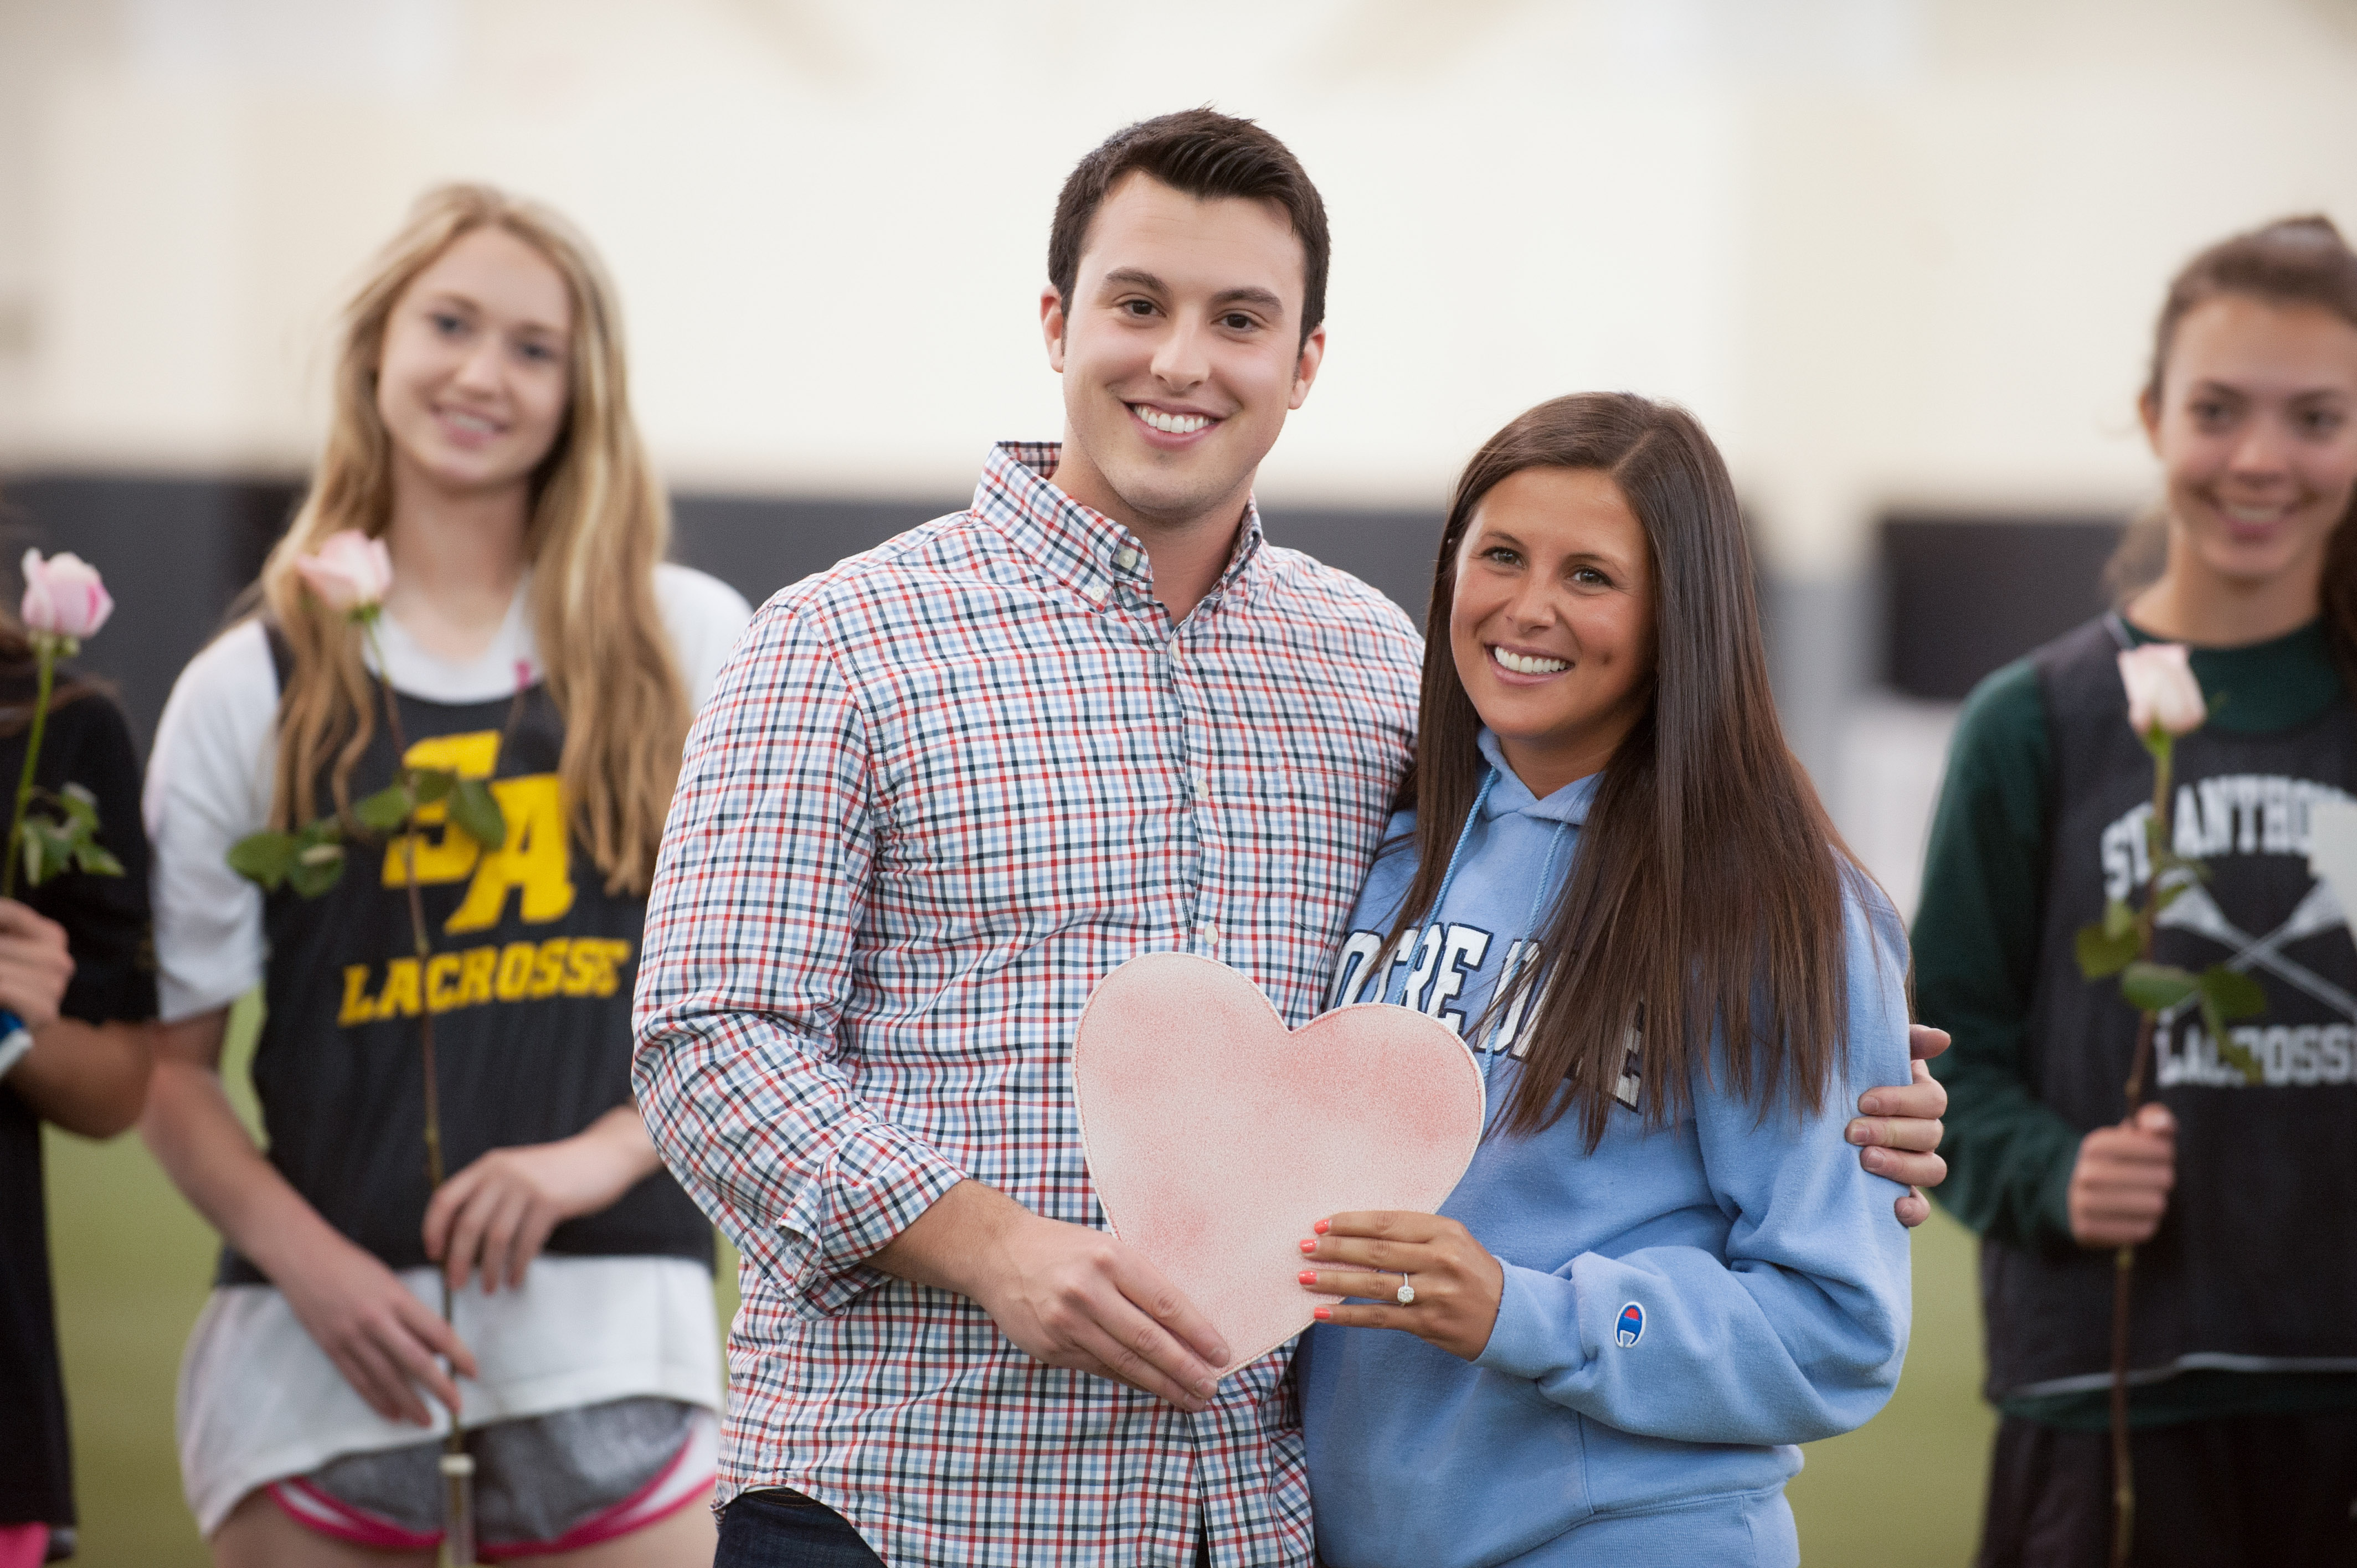 Image 19 of Marriage Proposal at Lacrosse Practice